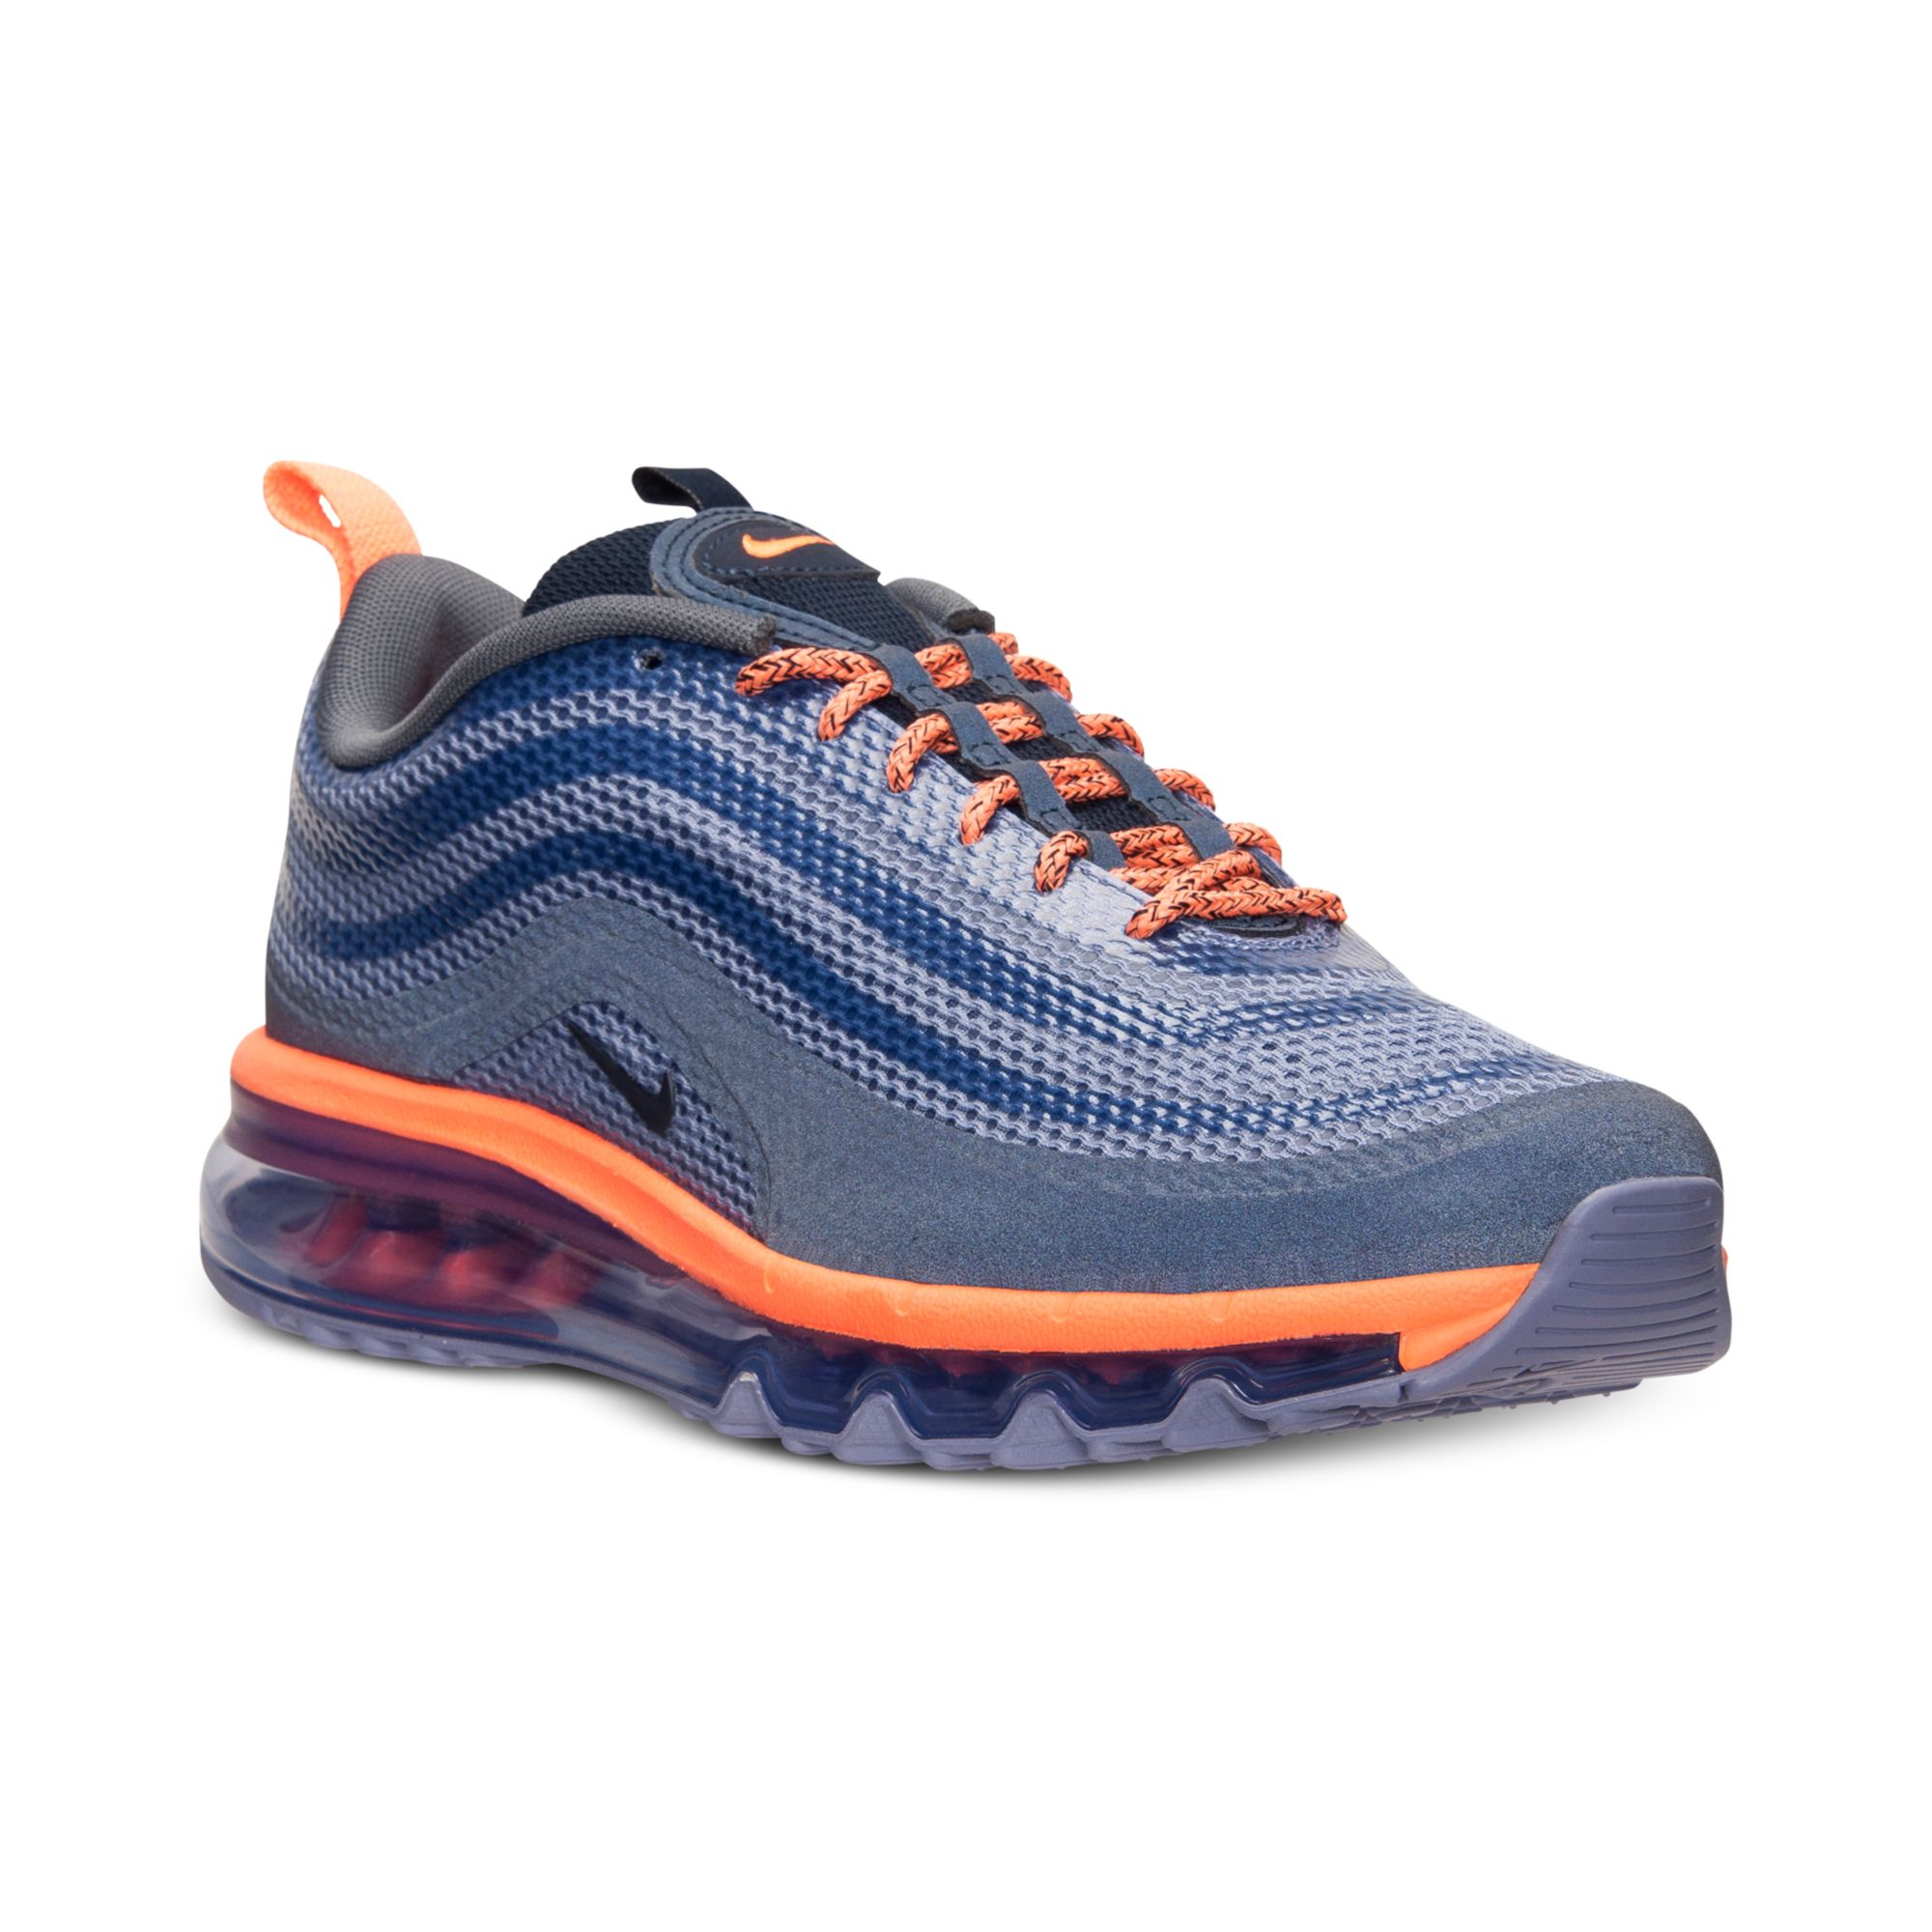 Lyst - Nike Mens Air Max 97 Hyp Running Sneakers From Finish Line in ... b277a2361ff8